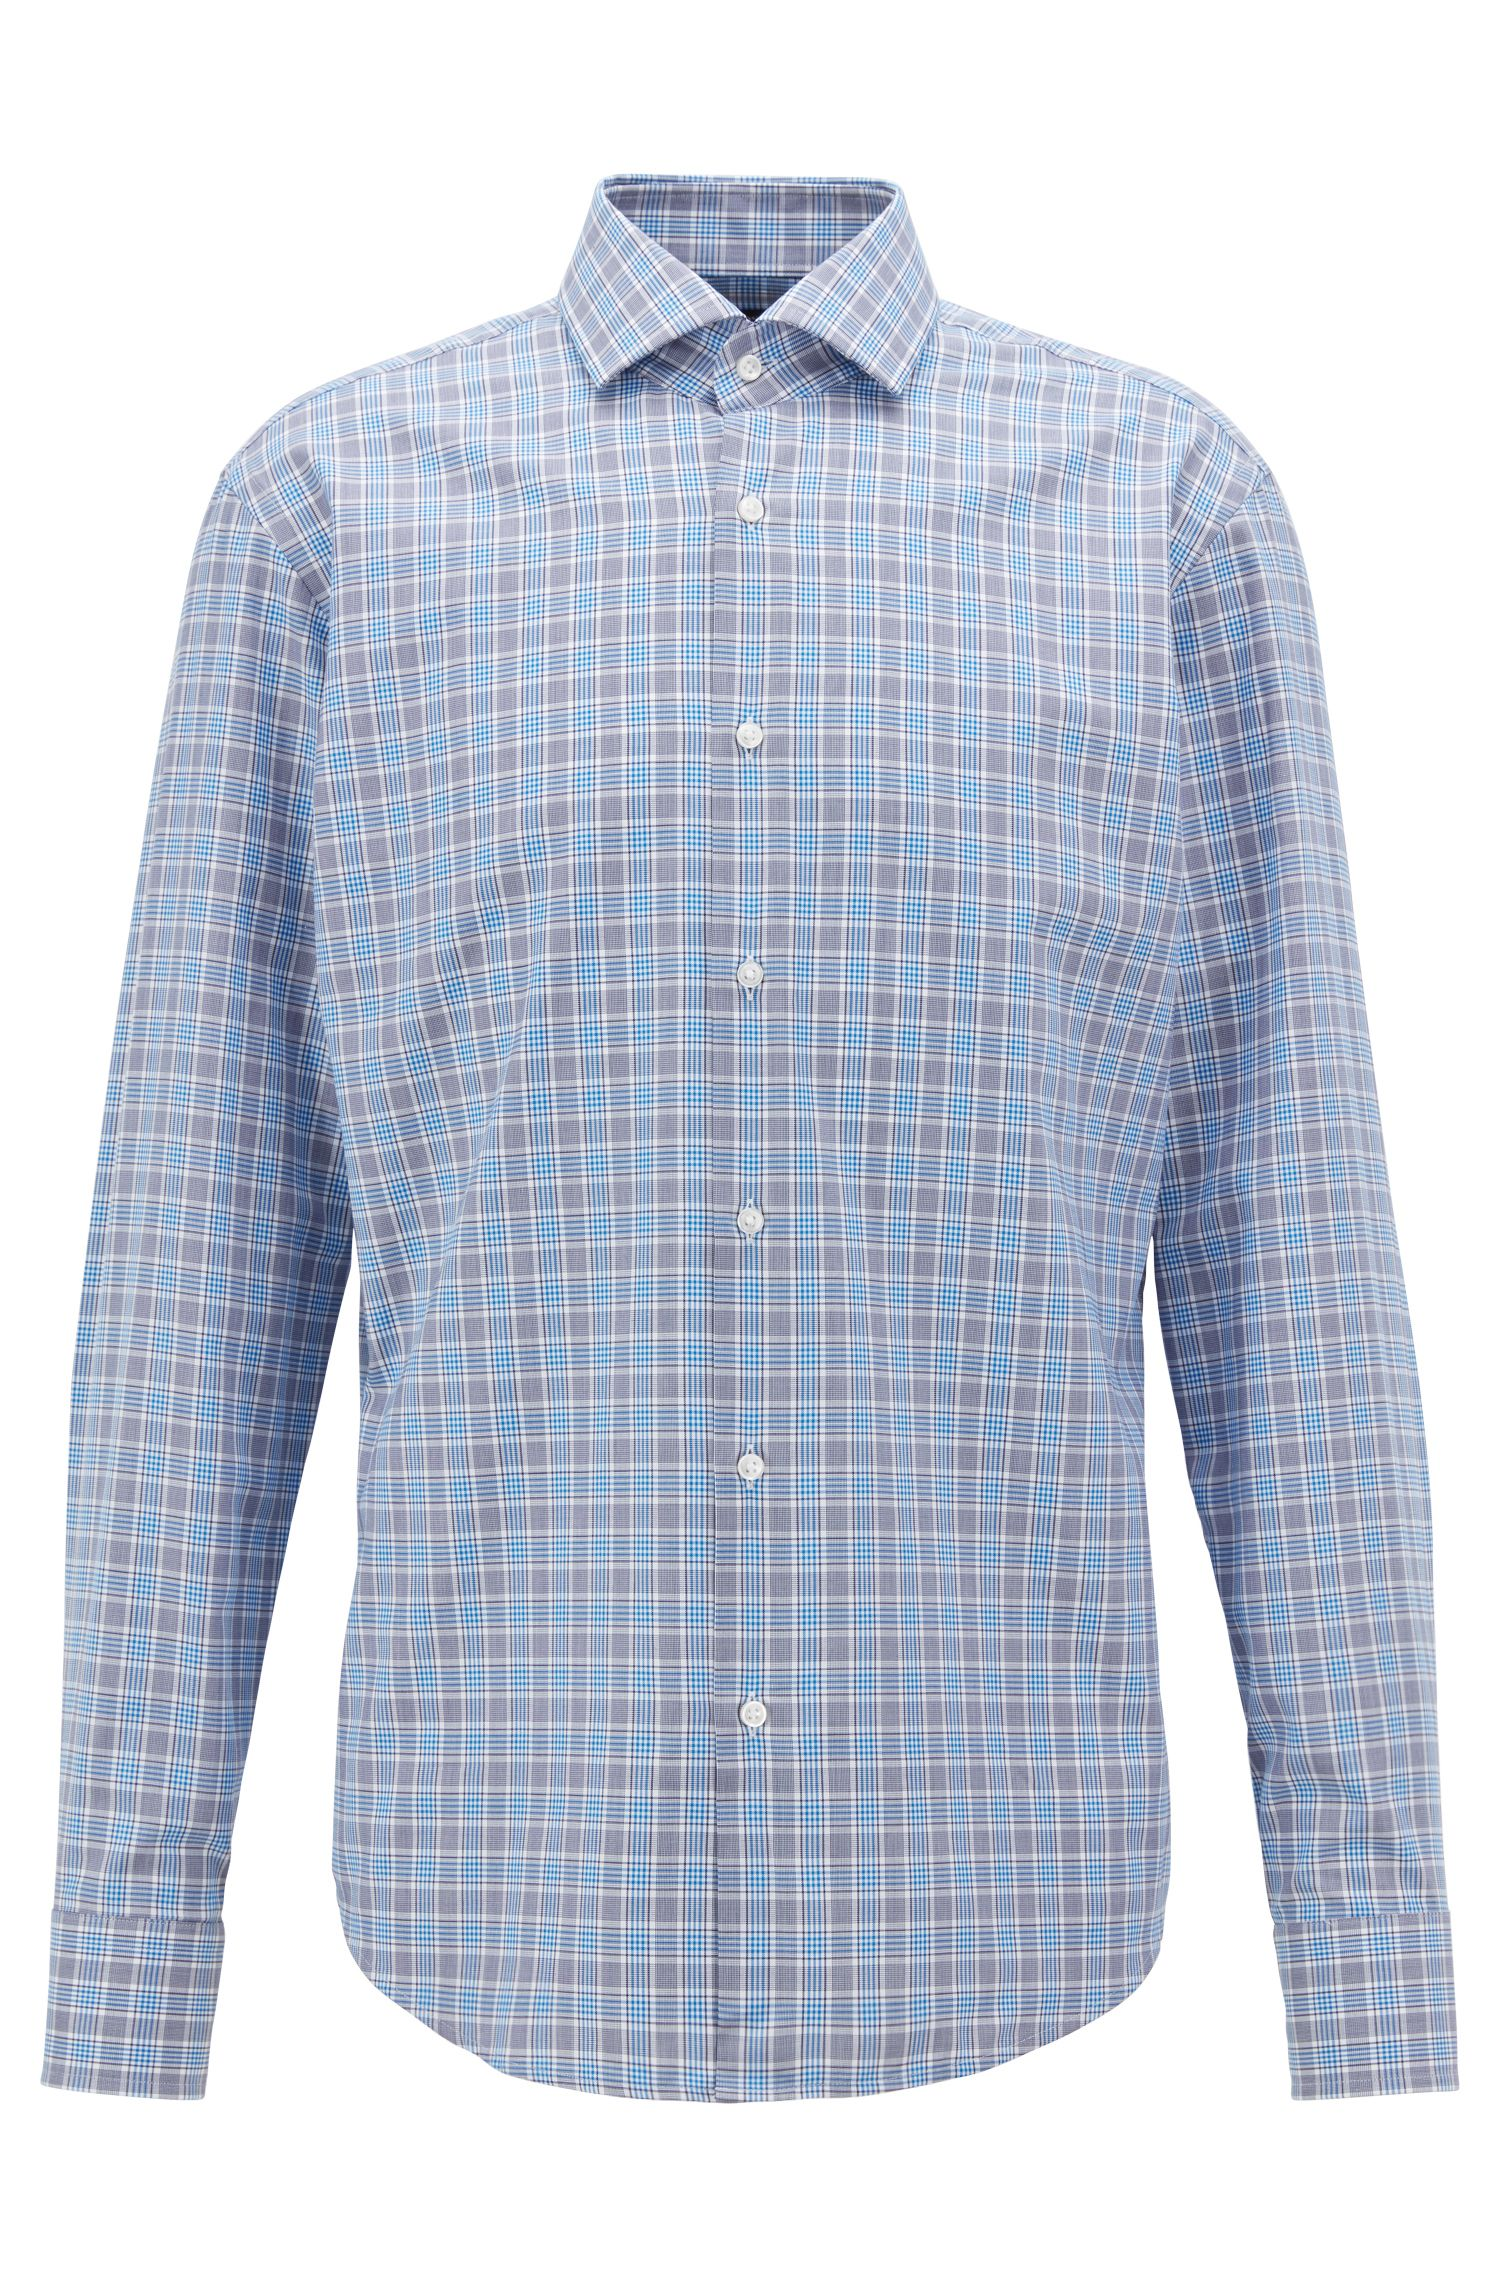 Regular-fit shirt in Vichy-check cotton twill, Blue